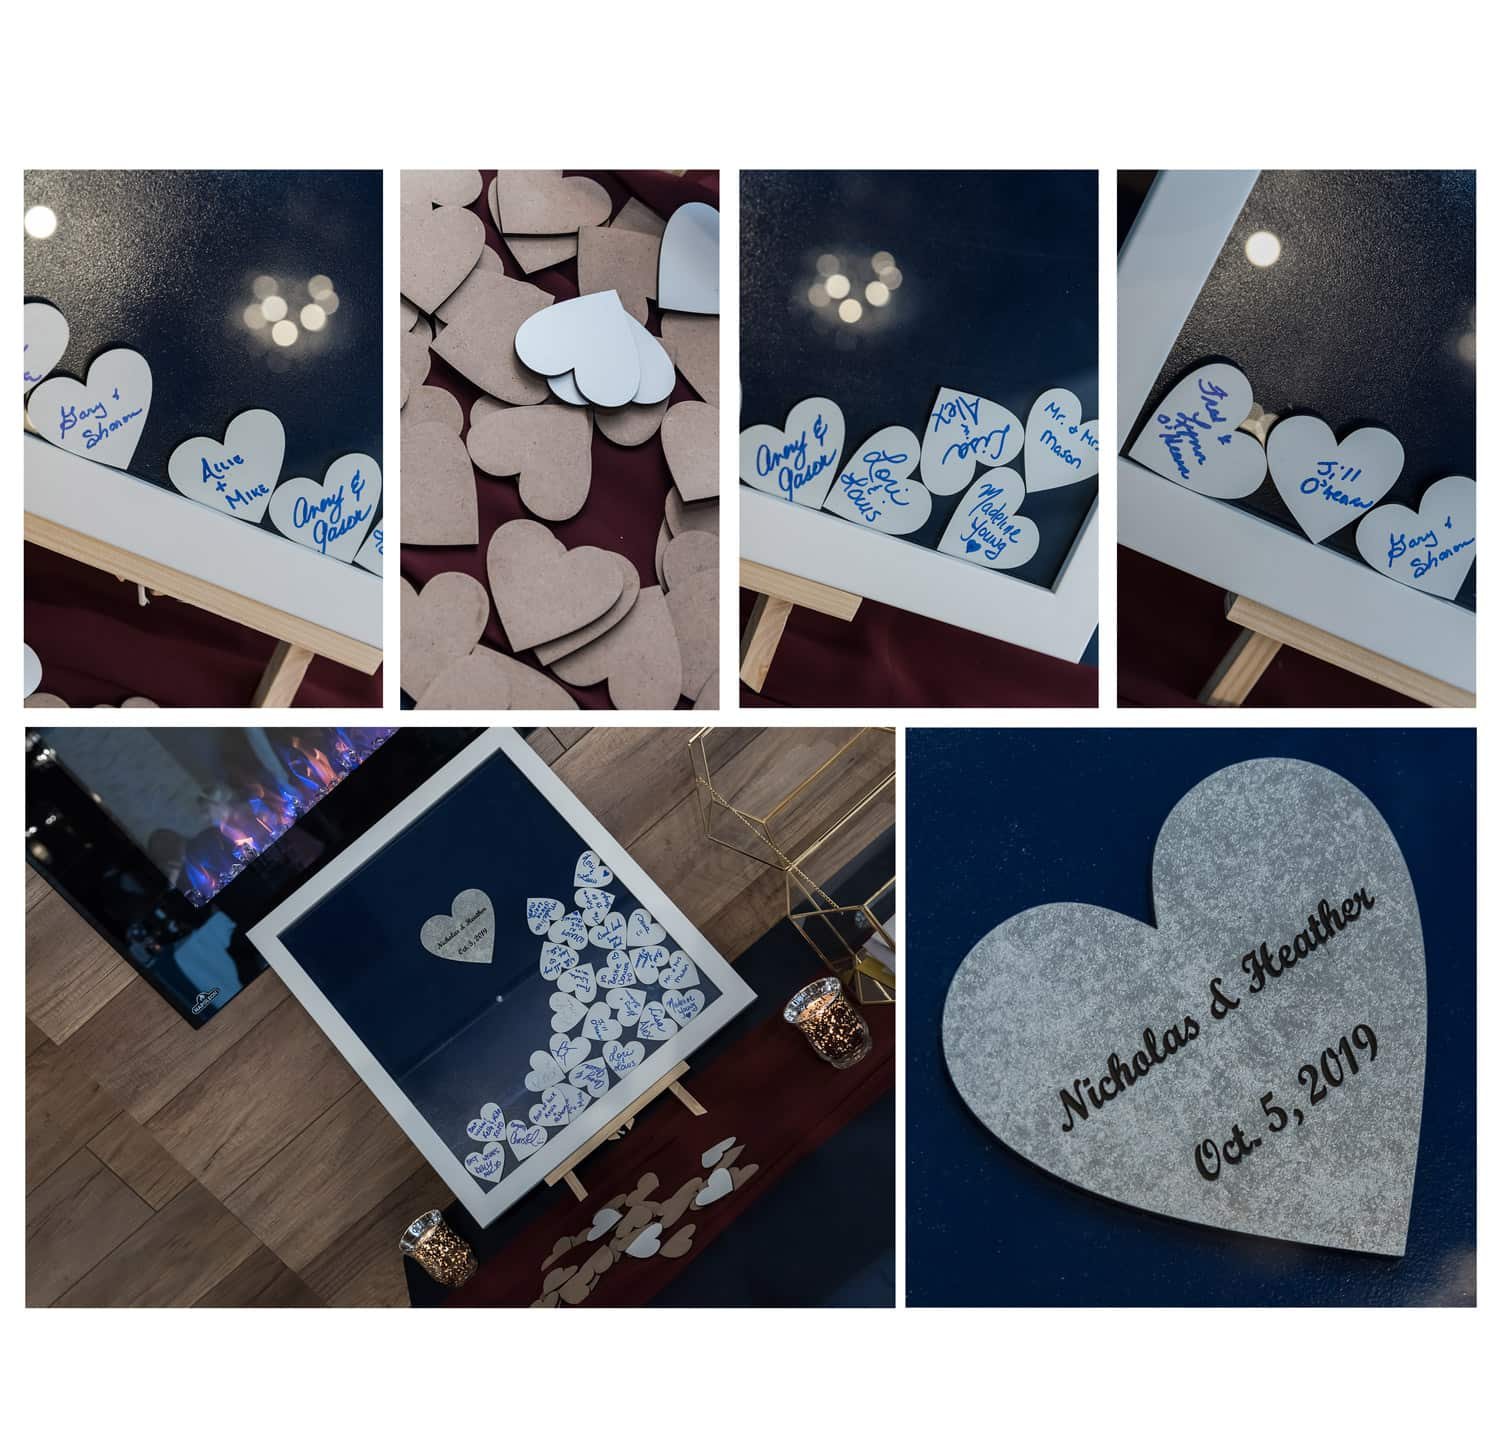 a glass frame style wedding guest book with wooden hearts for wedding guests to sign and place within the frame